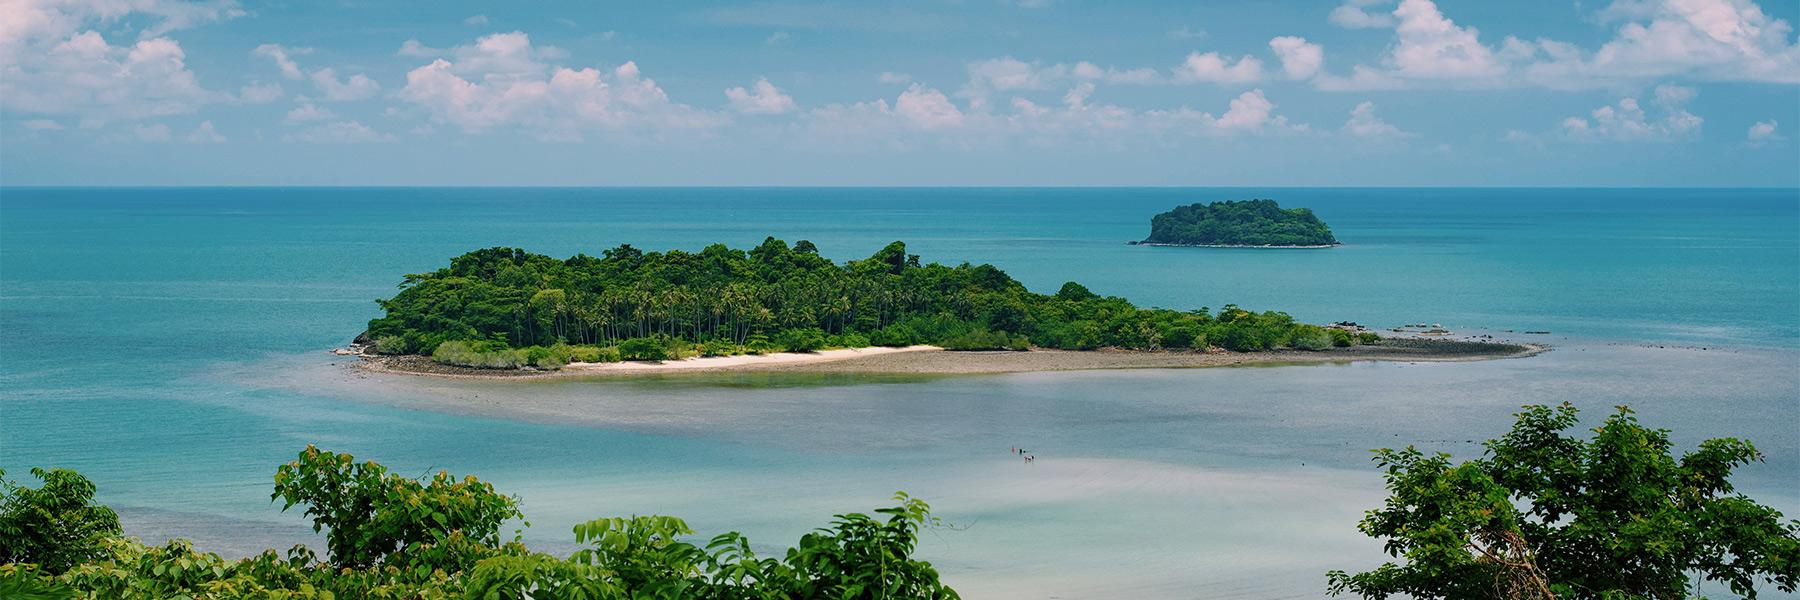 Why Visit Koh Chang?